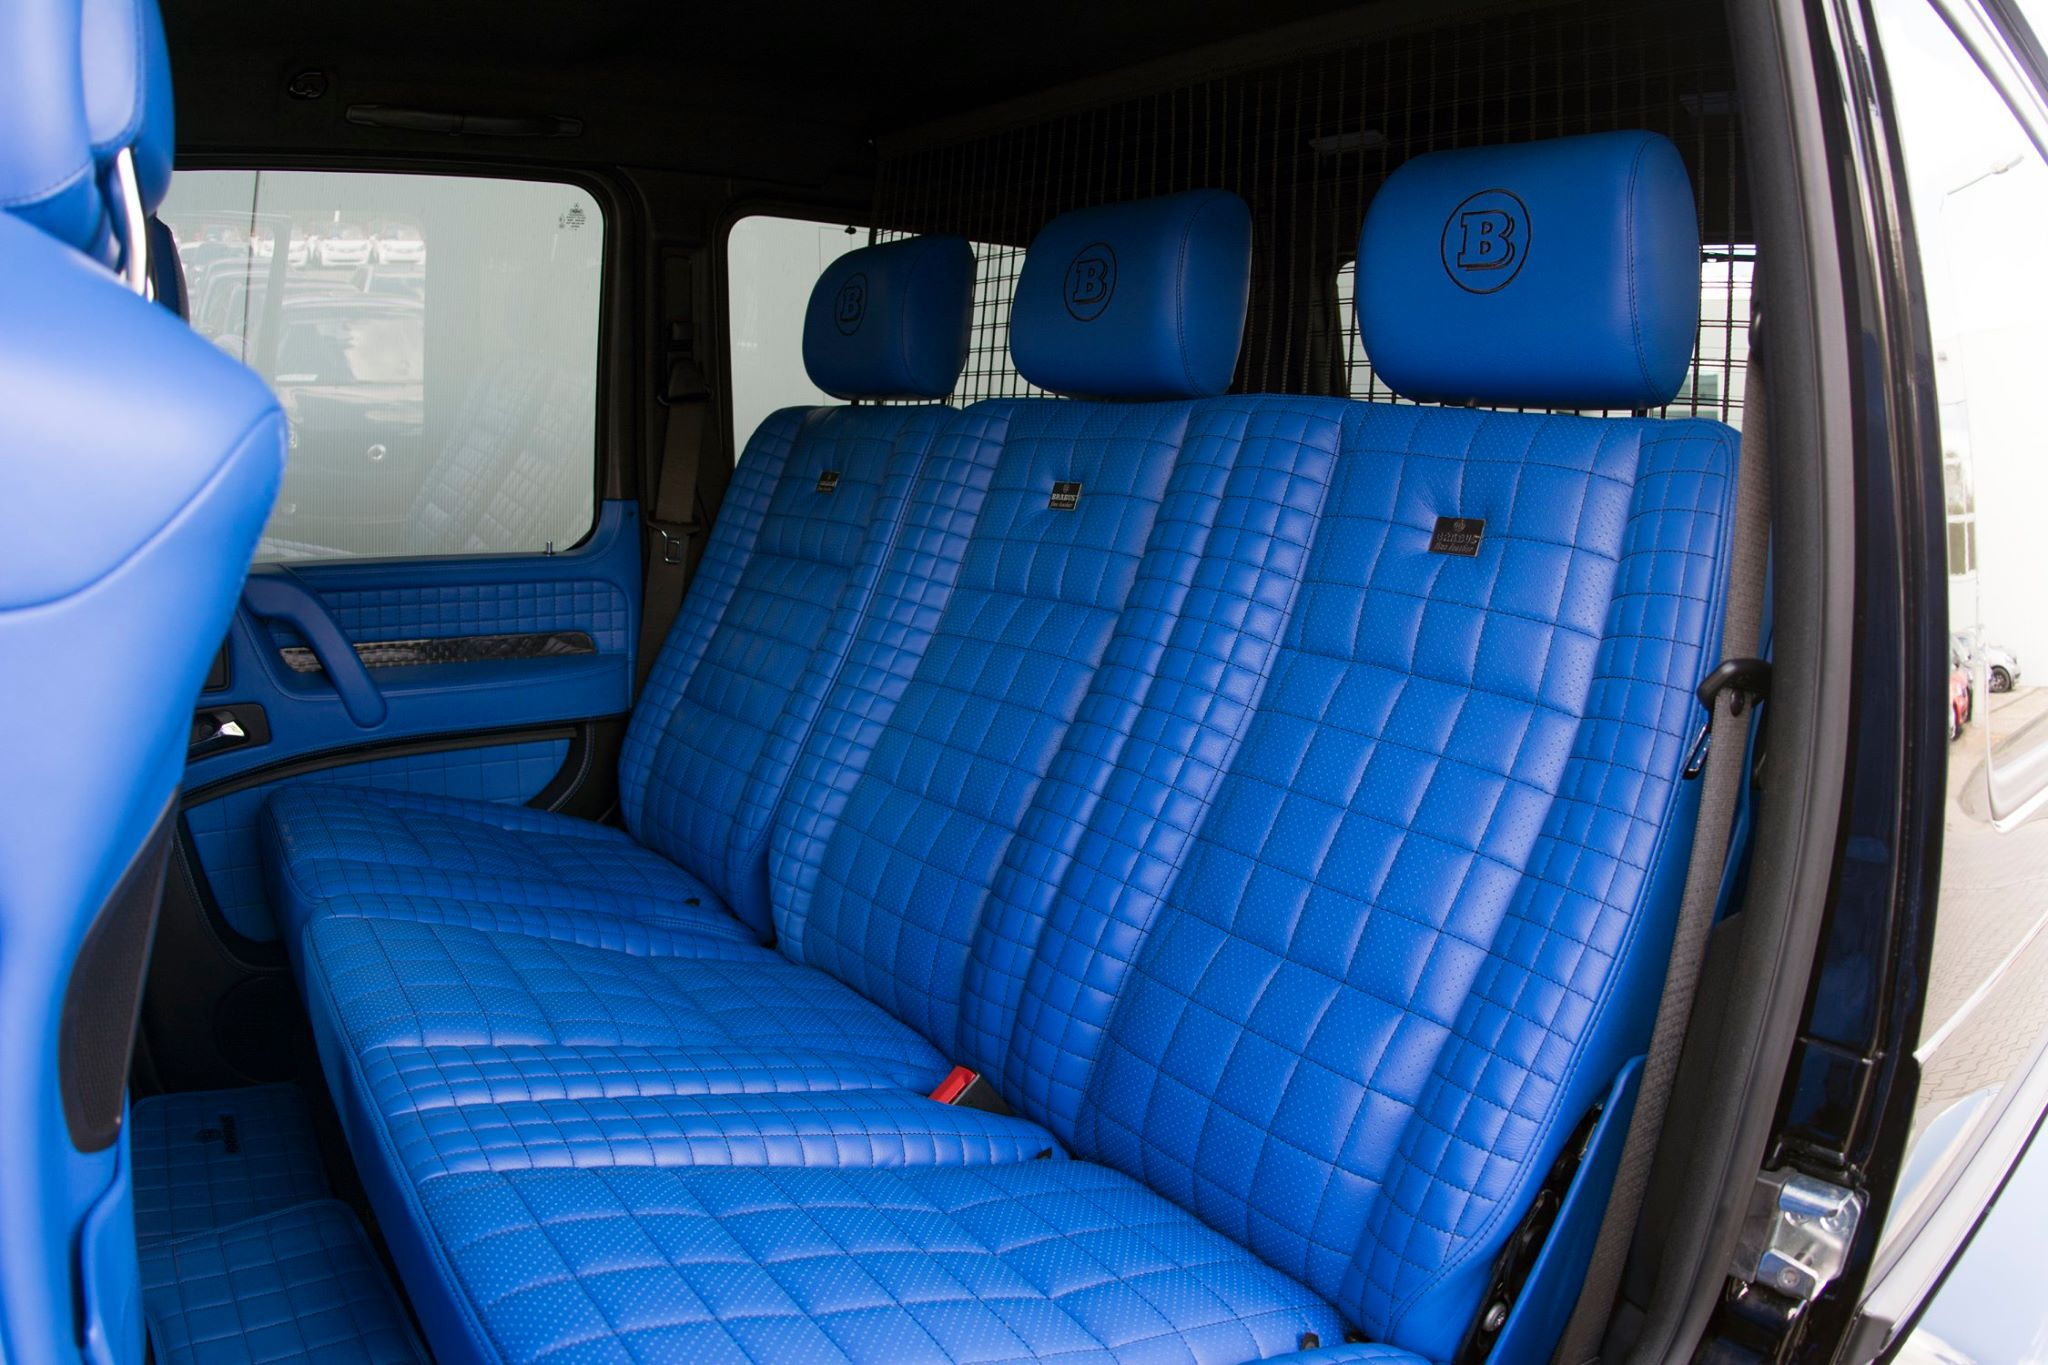 brabus g500 4x4 has a blue leather interior that 39 s nifty autoevolution. Black Bedroom Furniture Sets. Home Design Ideas